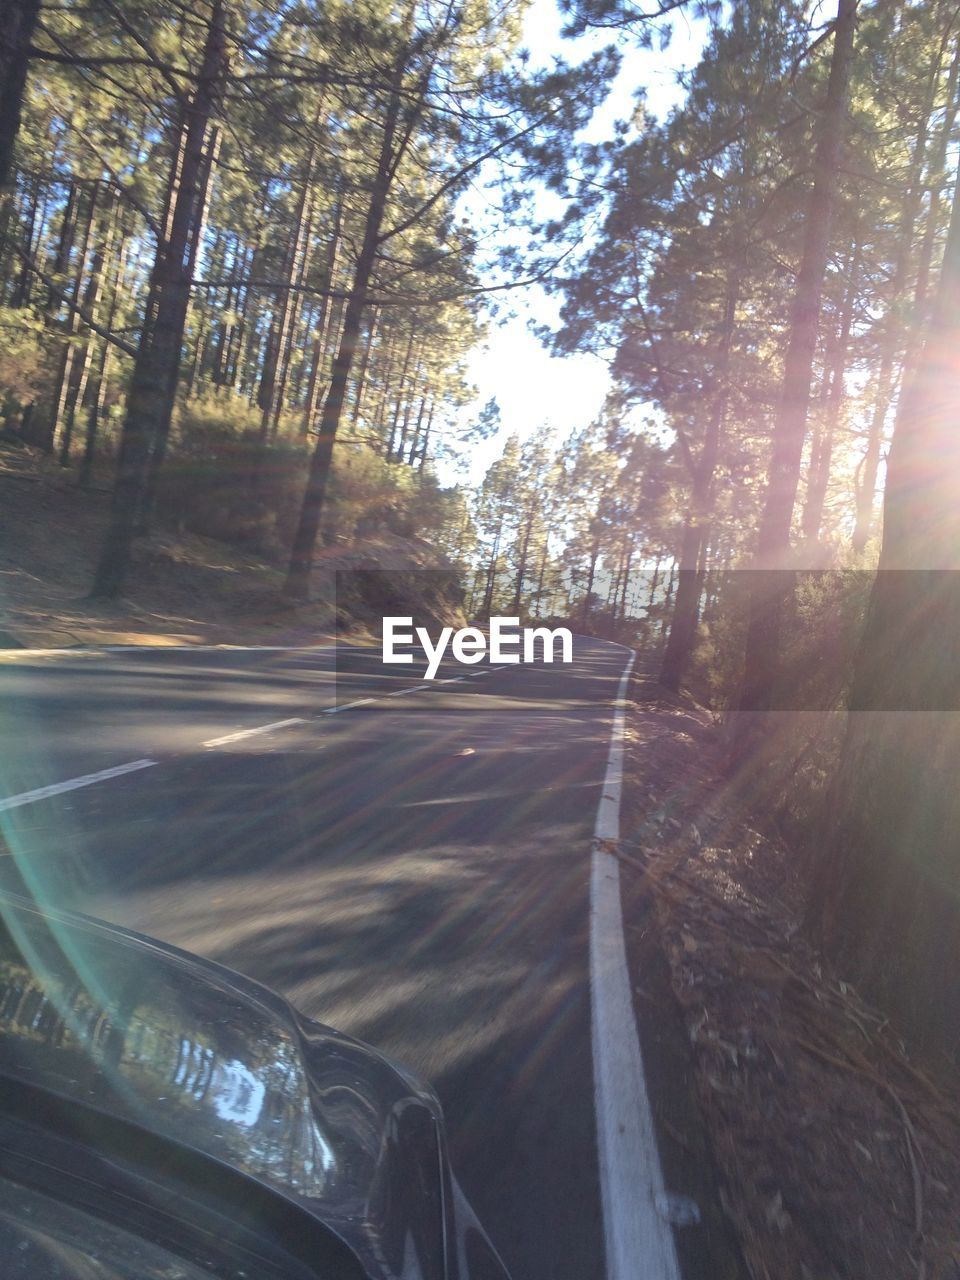 tree, transportation, road, car, the way forward, no people, day, sunlight, nature, forest, land vehicle, outdoors, close-up, sky